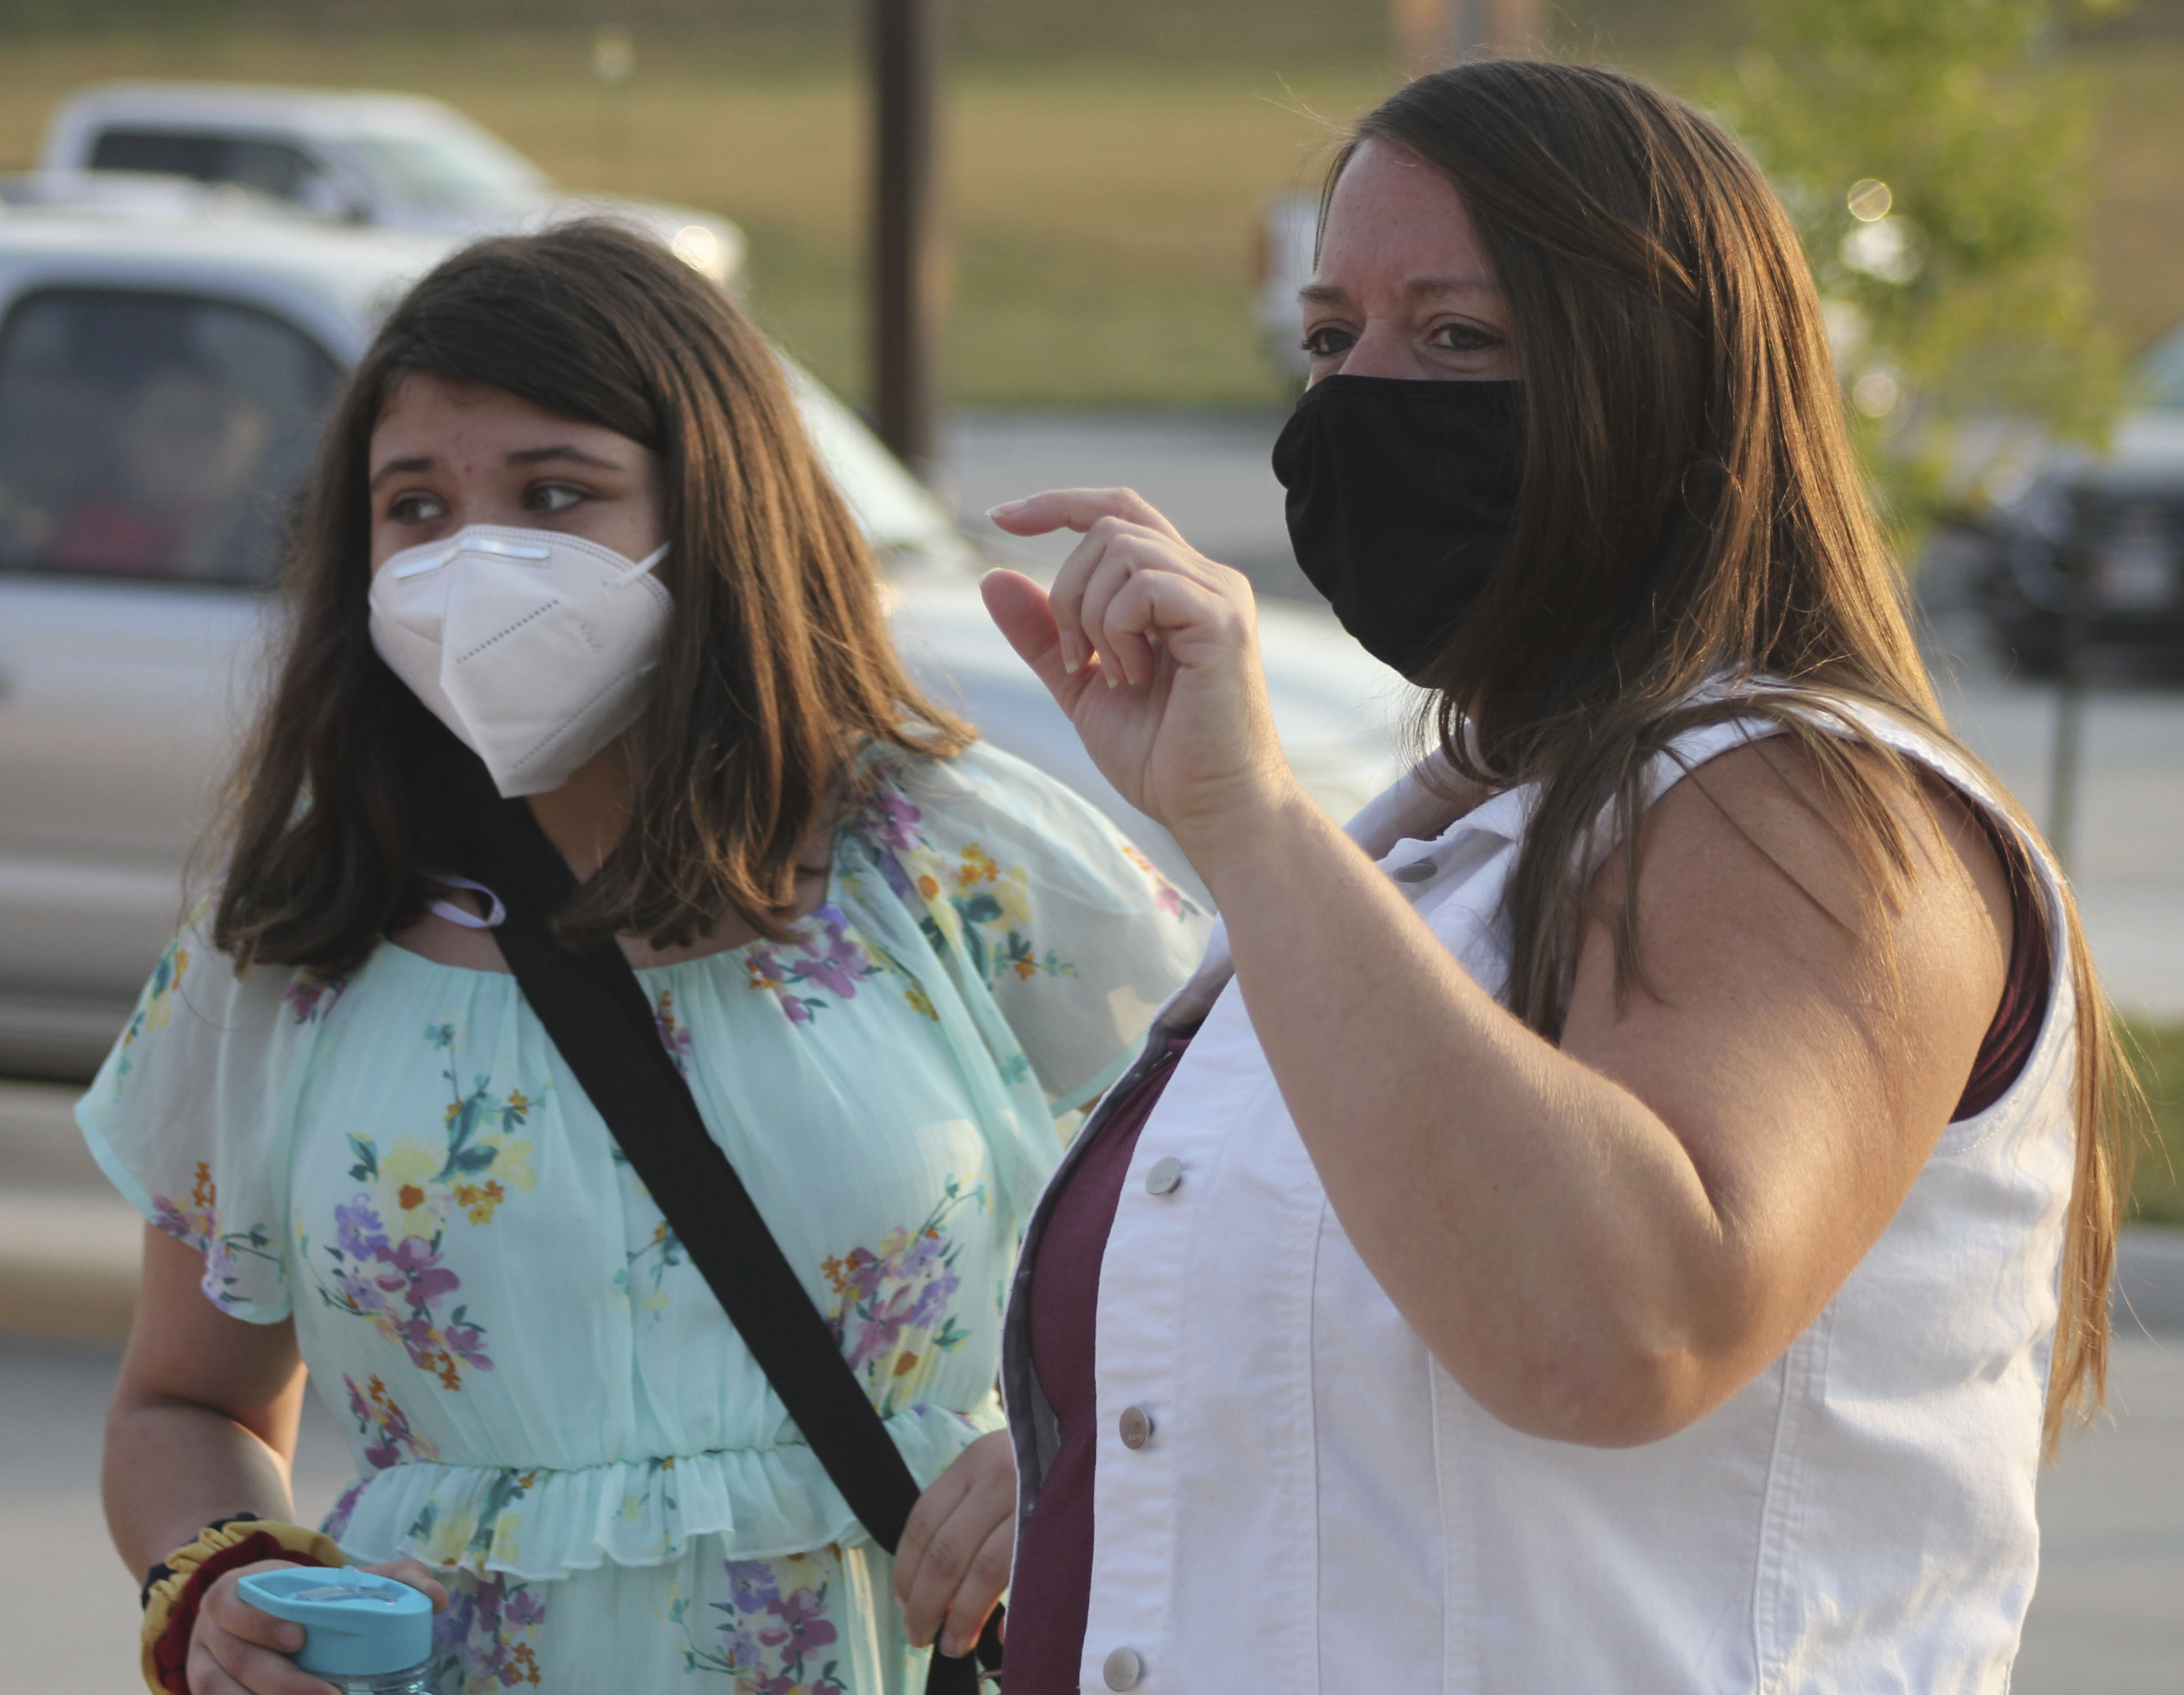 Monticello Middle School eighth-grader Adeline Wenger (left) receives guidance from middle school associate Dawn Bixler before entering the new building on the first day of school Aug. 24. (Photo by Pete Temple)